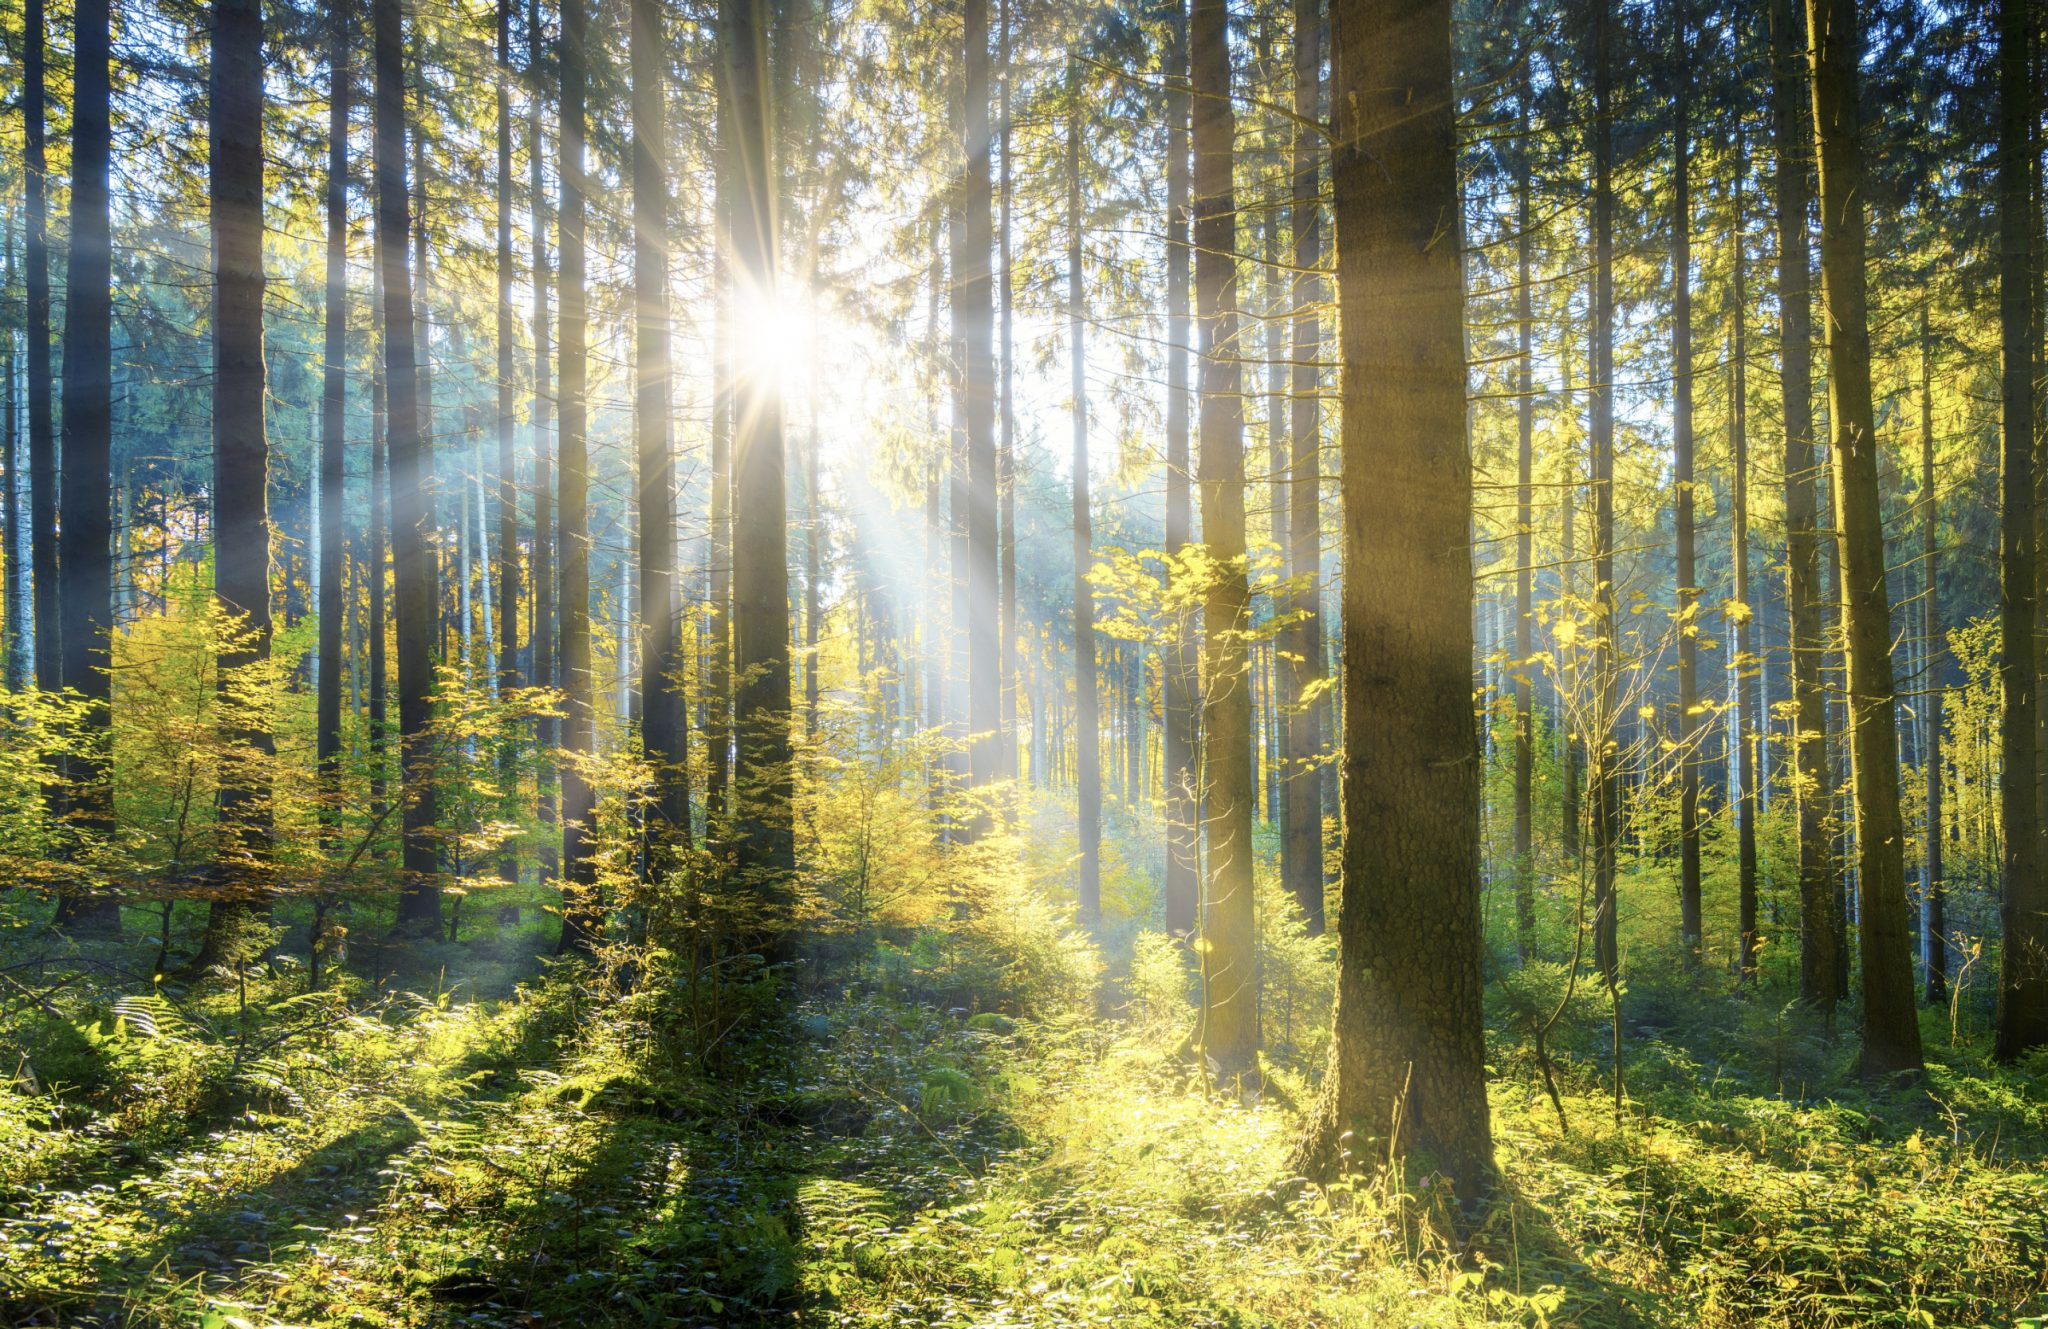 Want To Fight Global Warming Just Plant More Trees For Starters